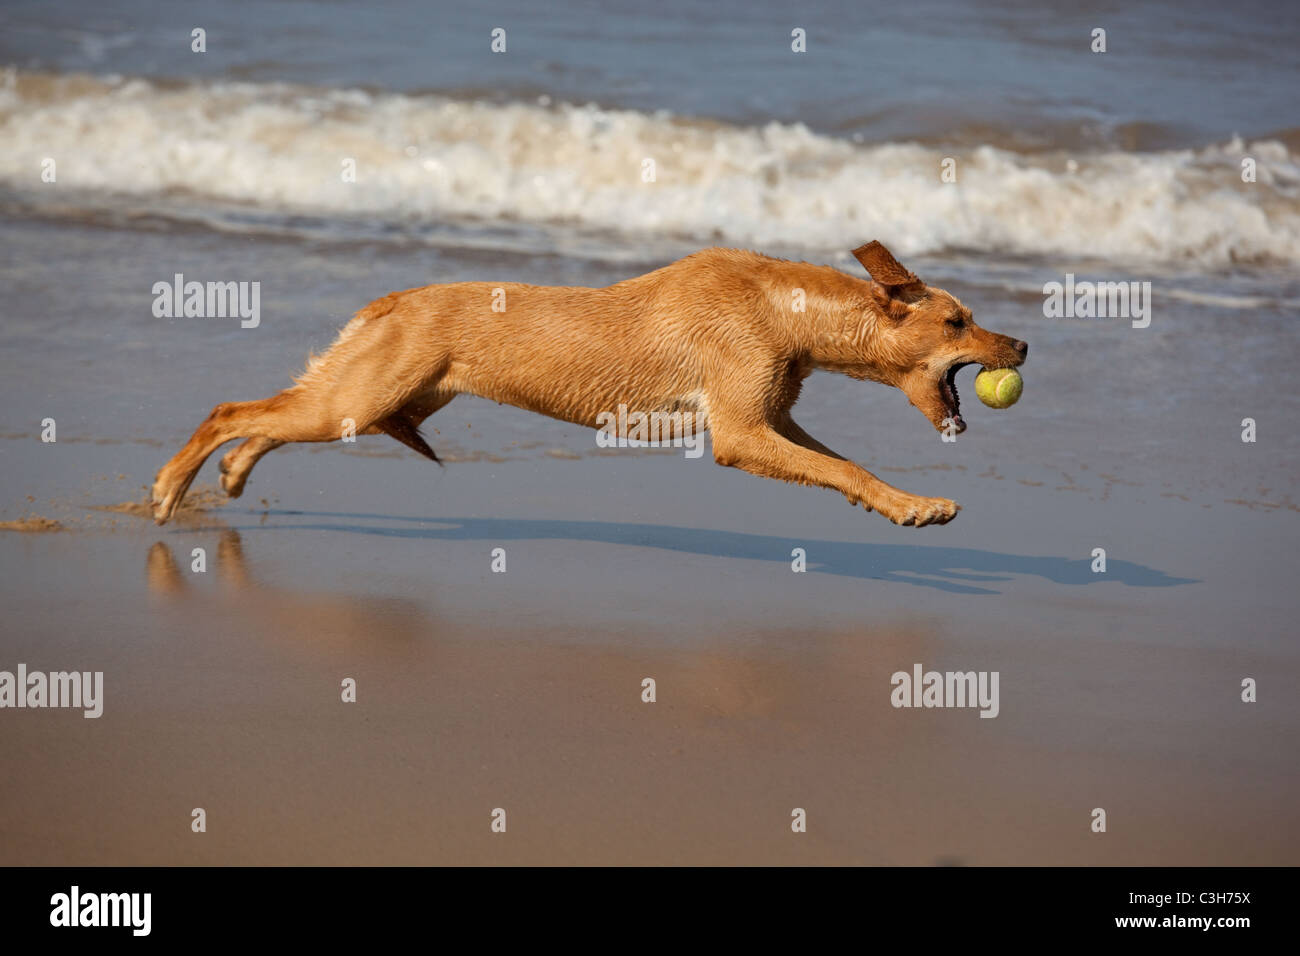 Yellow Labrador playing with ball - Stock Image